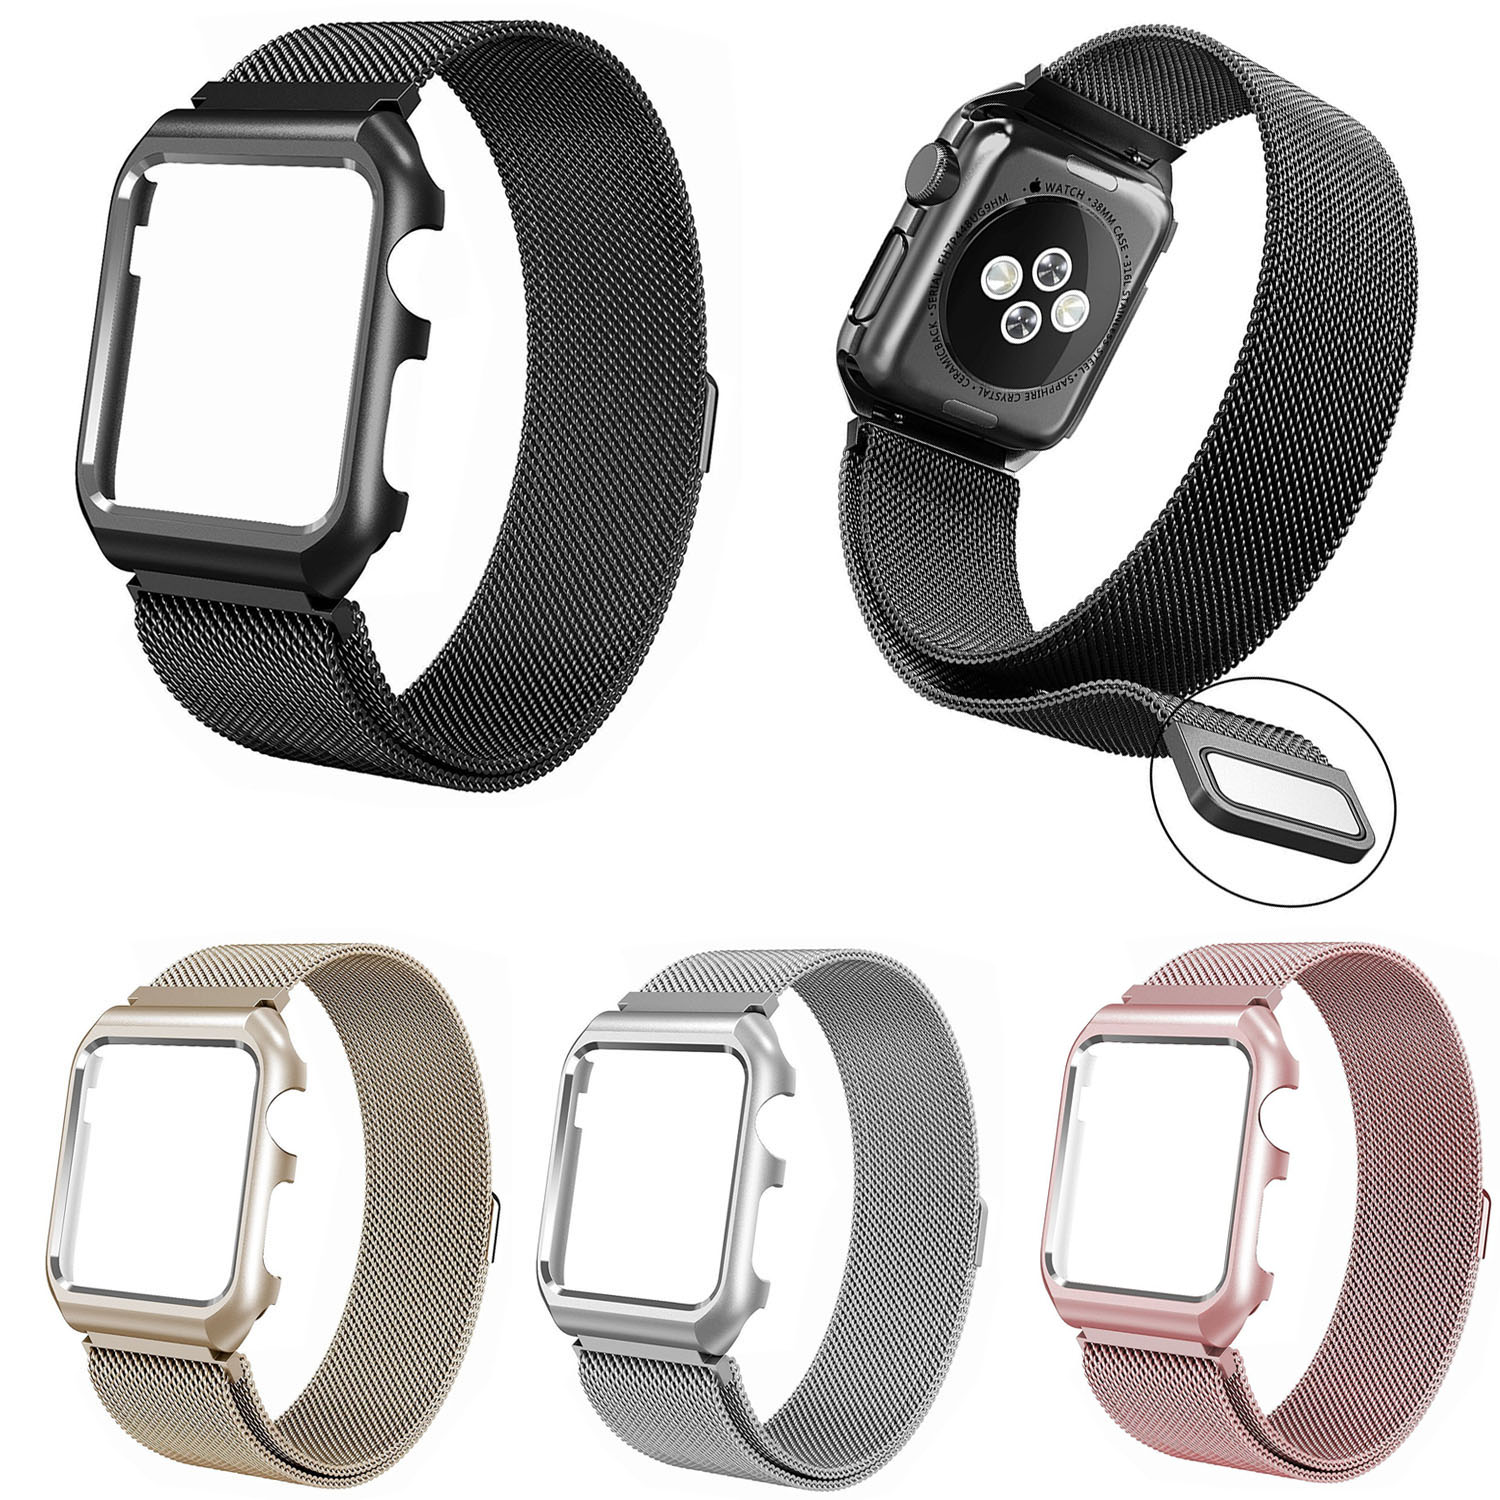 Mianlese Loop Strap for Apple Watch Band Series 1/2 Magnetic Clasp Stainless Steel Bracelet for iWatch with Case Cover 42mm 38mm genuine leather loop band for apple watch band 42mm 38mm strap bracelet for iwatch series 1 2 3 adjustable magnetic closure belt